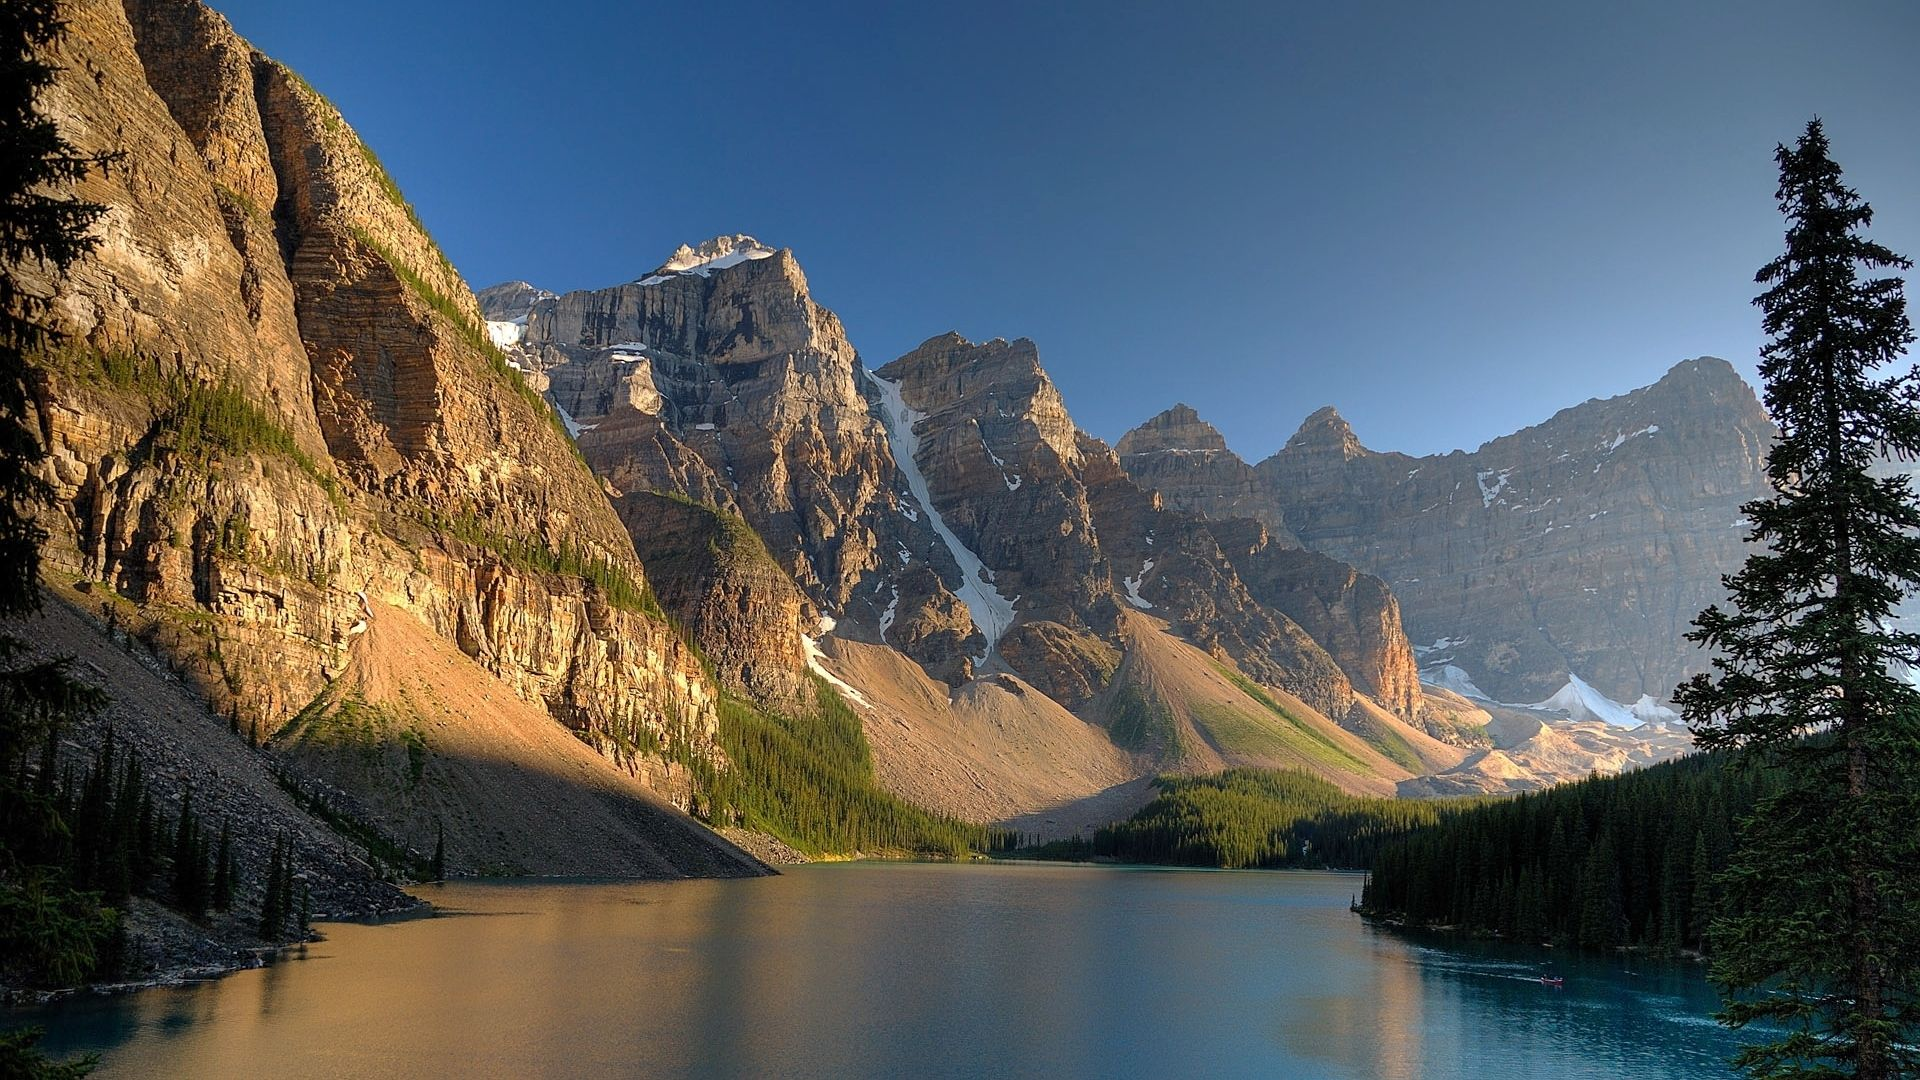 A Desktop Wallpaper Of The Mountains And Lakes